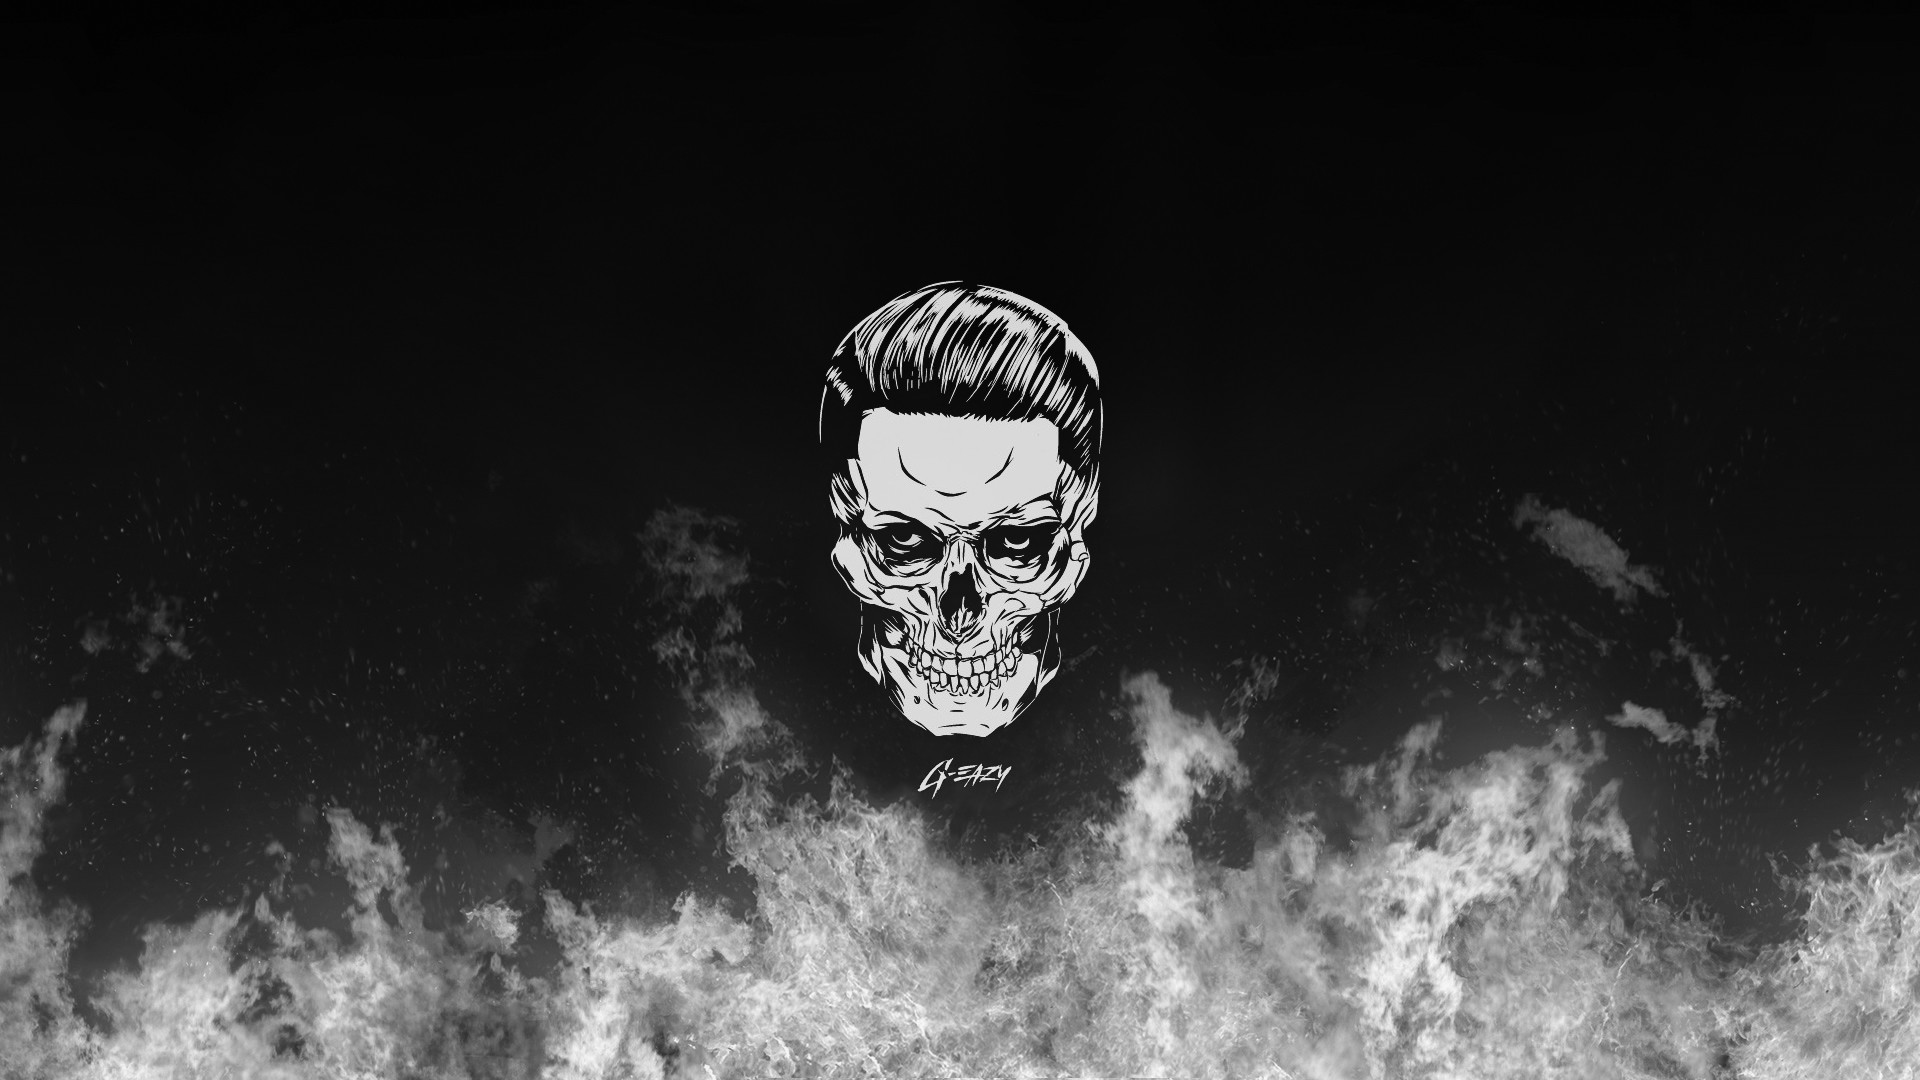 1920x1080 Best Wallpaper Gallery With G Eazy Skull And HD Wallpapers We Collected Full